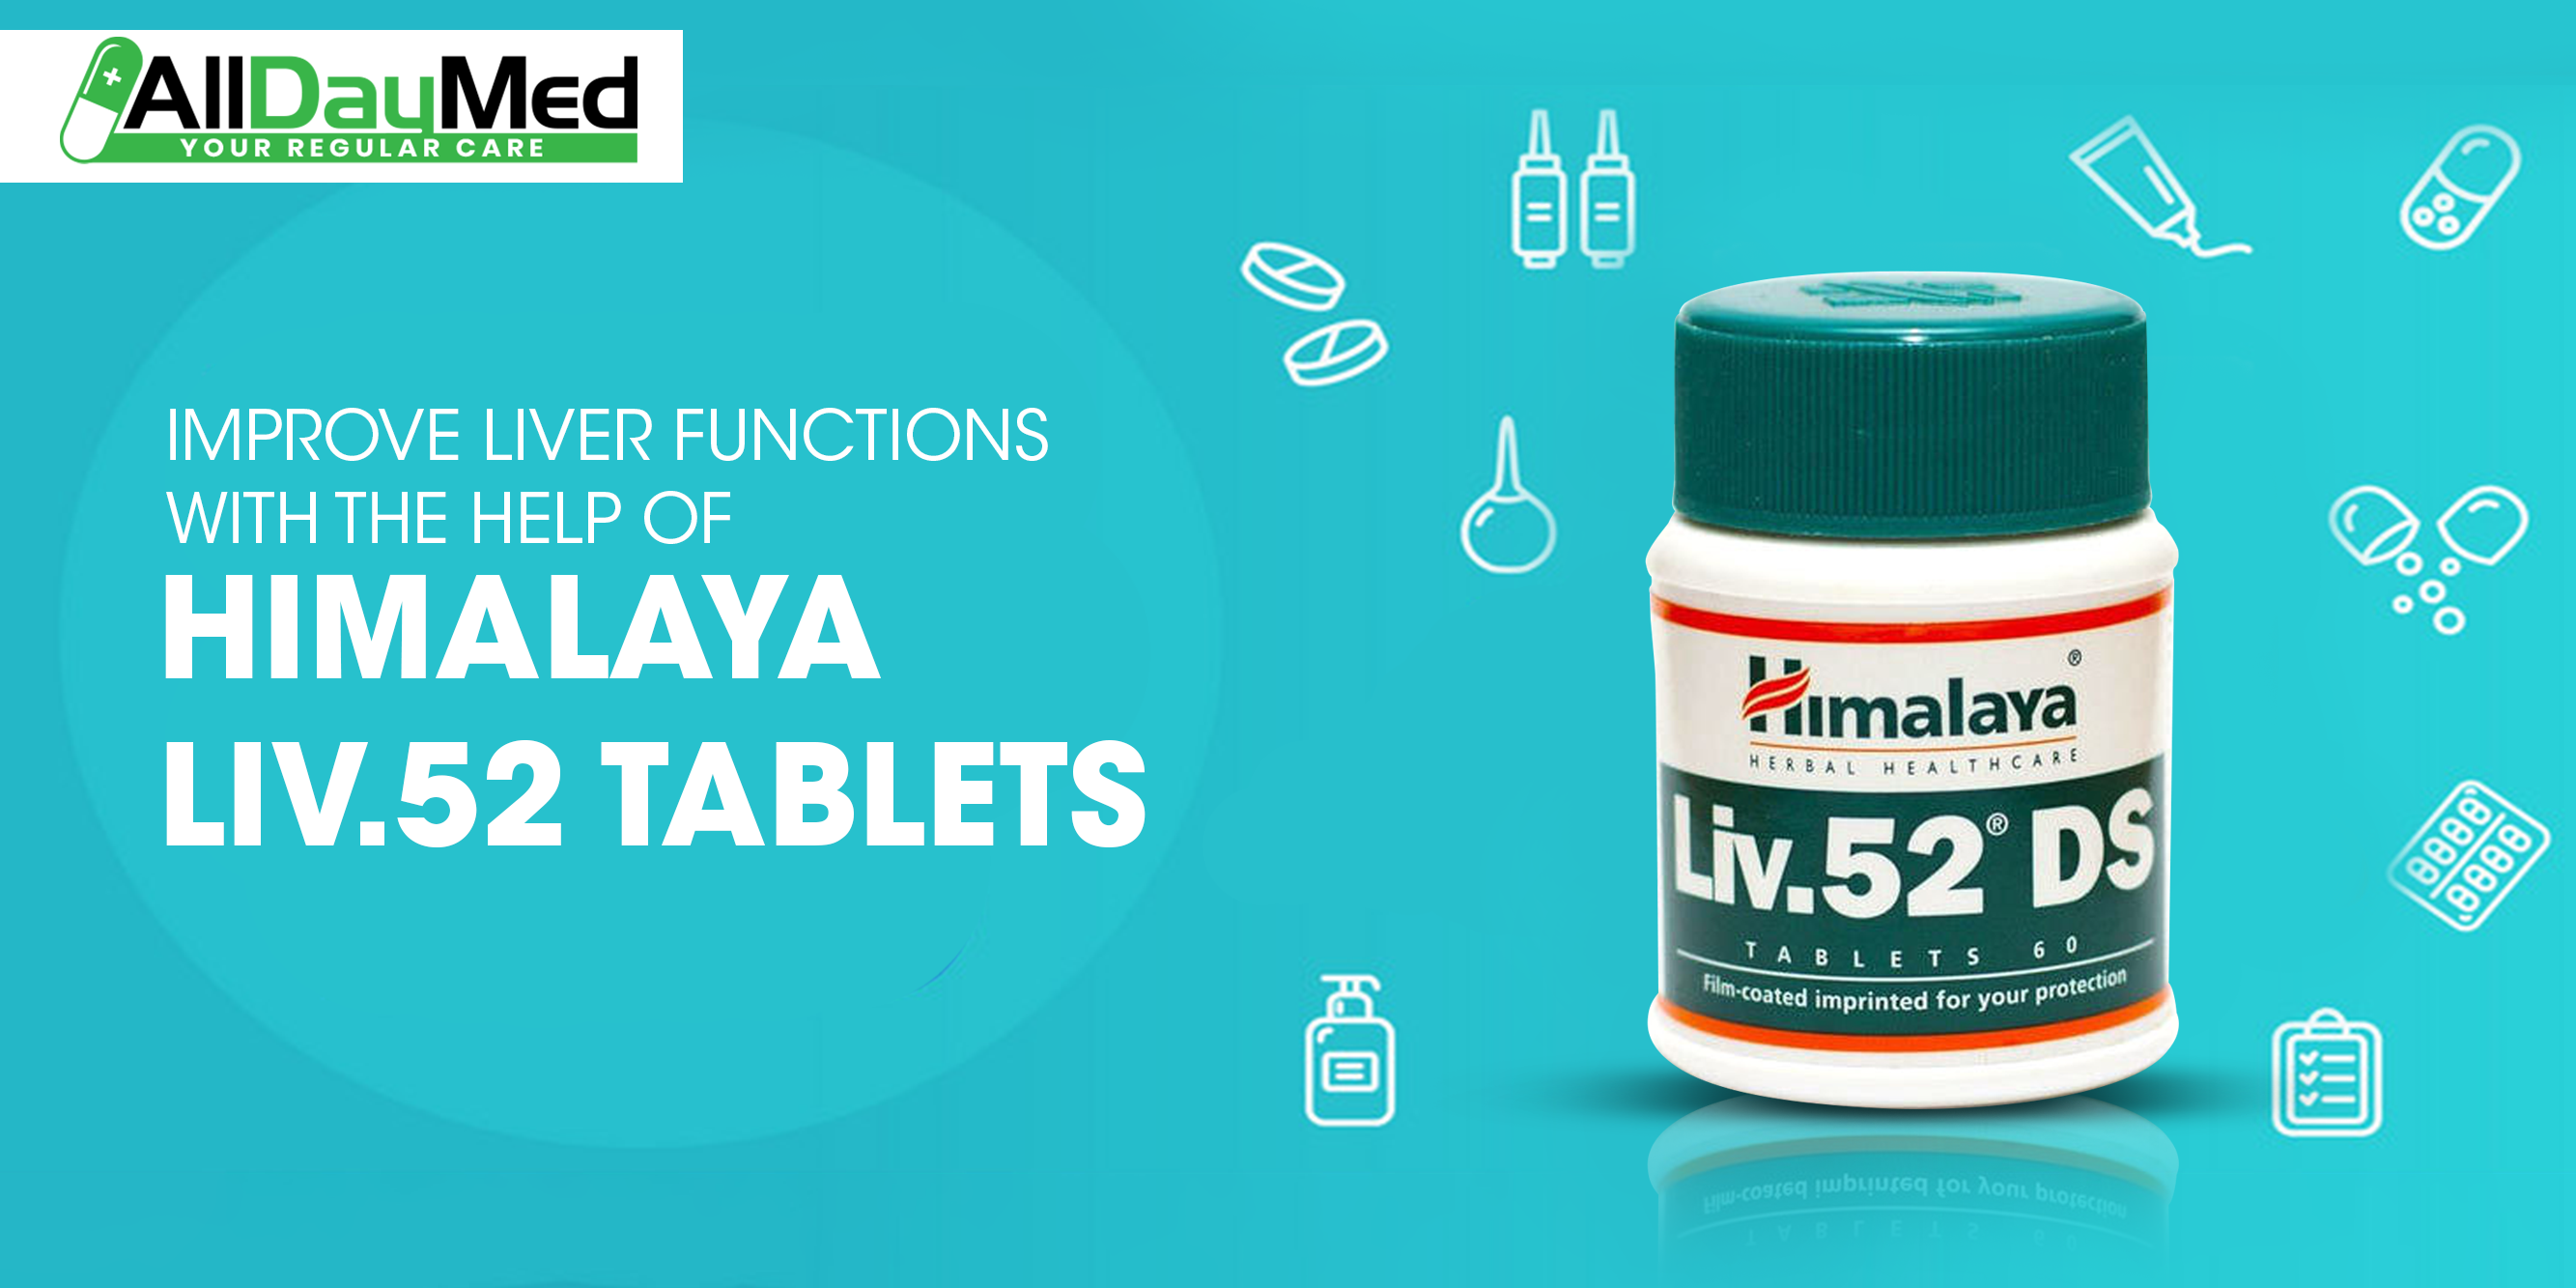 Improve Liver Functions with the Help of Himalaya Liv.52 Tablets